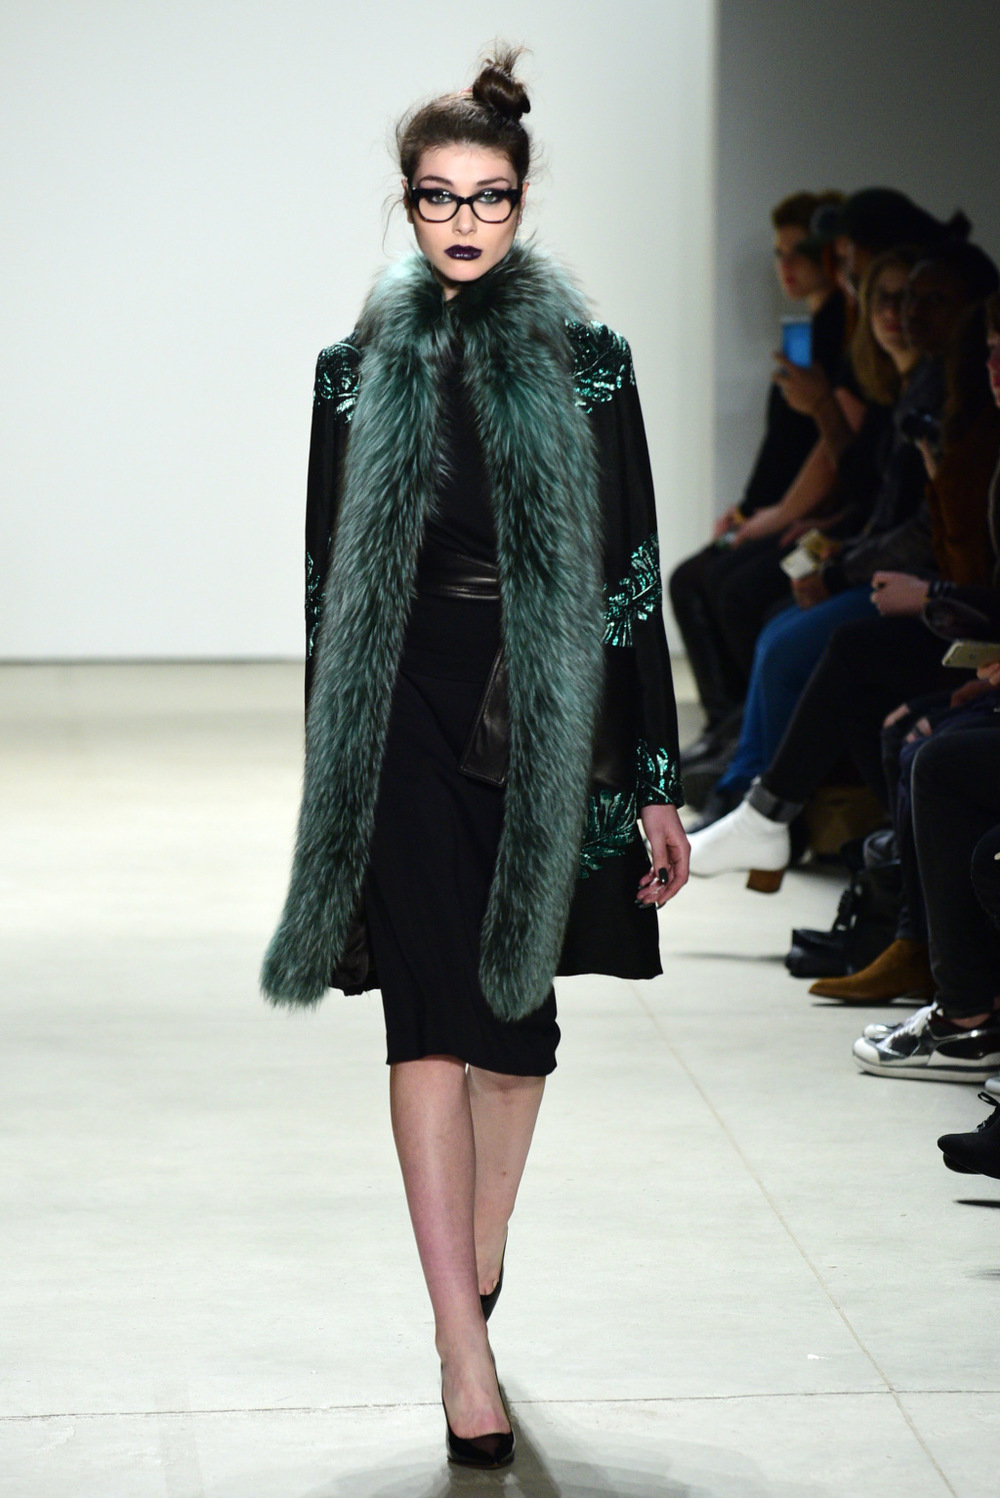 NYFW Georgine Fashion Show Fall Winter 2016 Louboutins & Love Fashion Blog Esther Santer NYC Street Style Runway Model Collection Skirt Inspo Beauty Front Row Event Details Photo Hair Dress Pretty Gown Beautiful Celebrities Stunning Gorgeous Sheer Fur.jpg